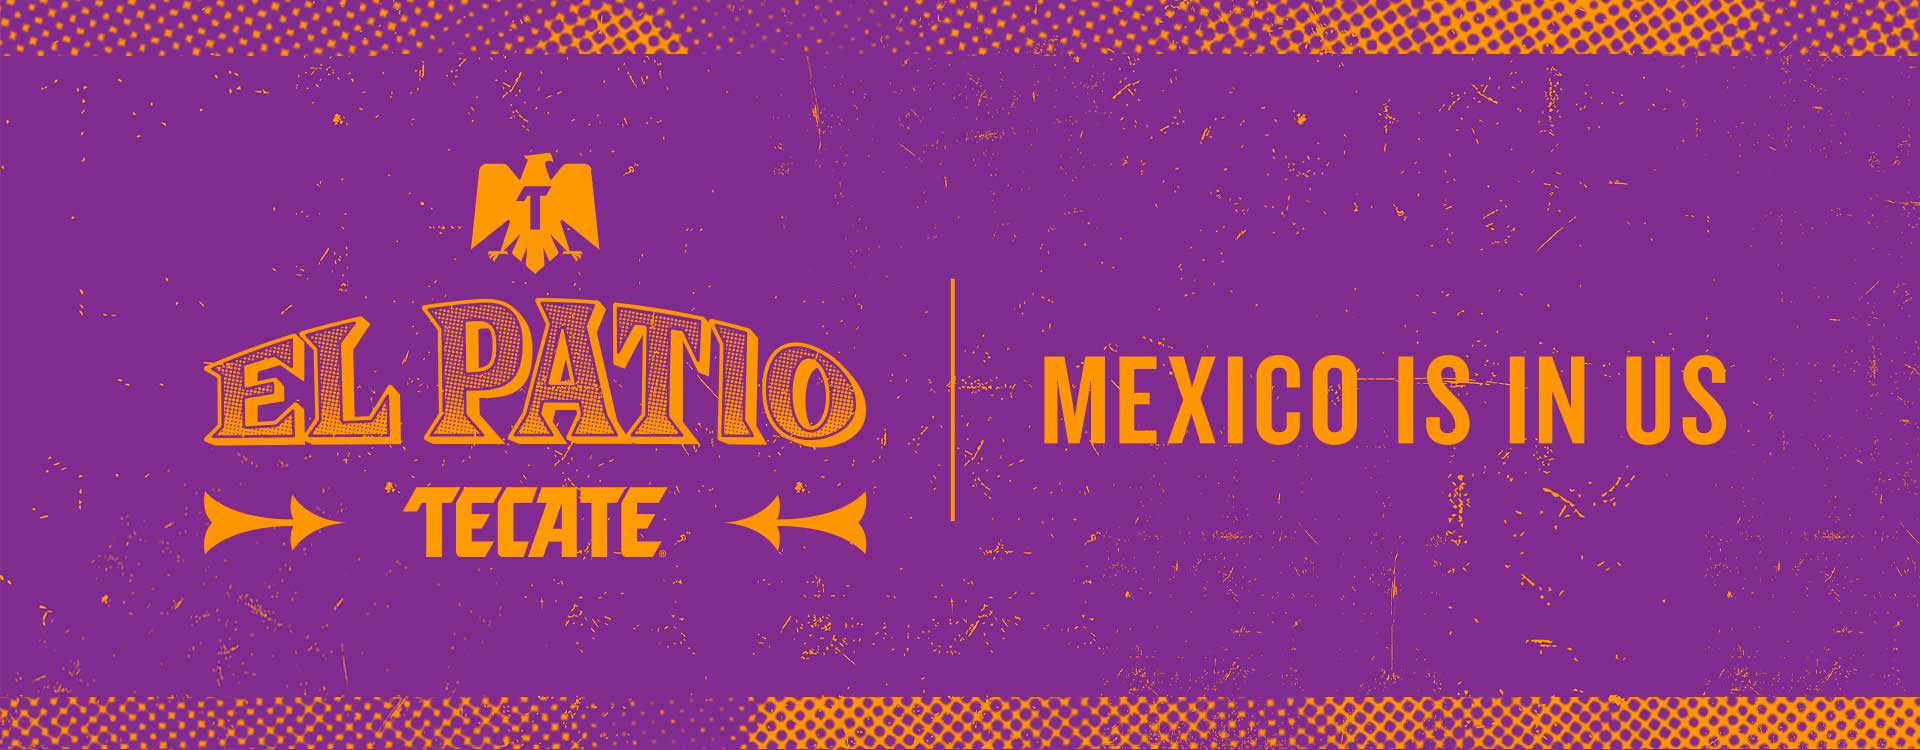 El Patio Tecate® Mexico Is In Us